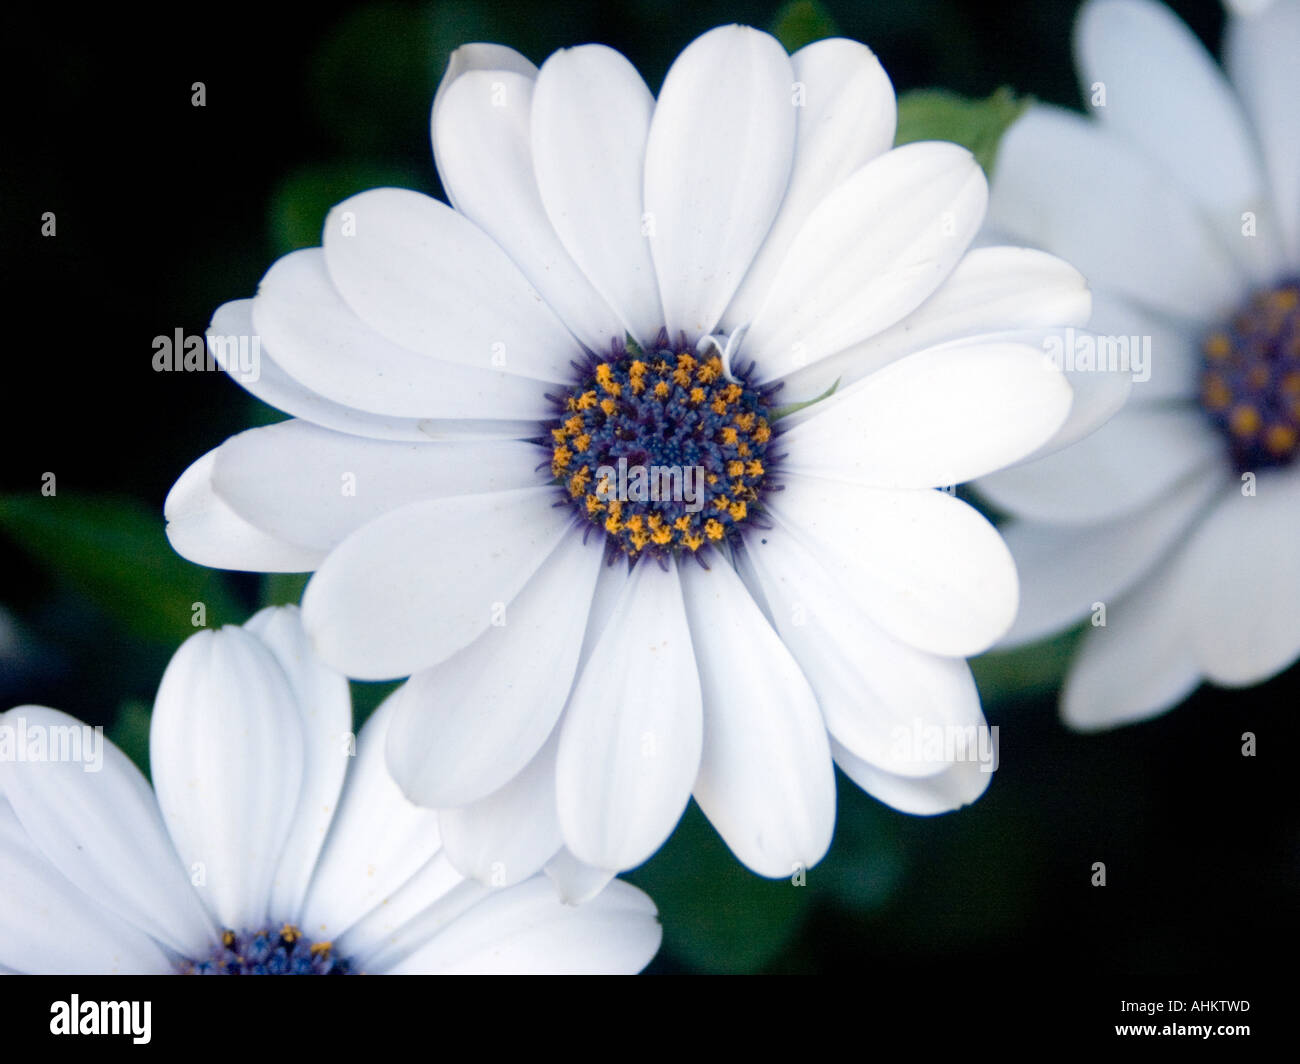 Close up of white osteospermum flower with blue and yellow centre close up of white osteospermum flower with blue and yellow centre izmirmasajfo